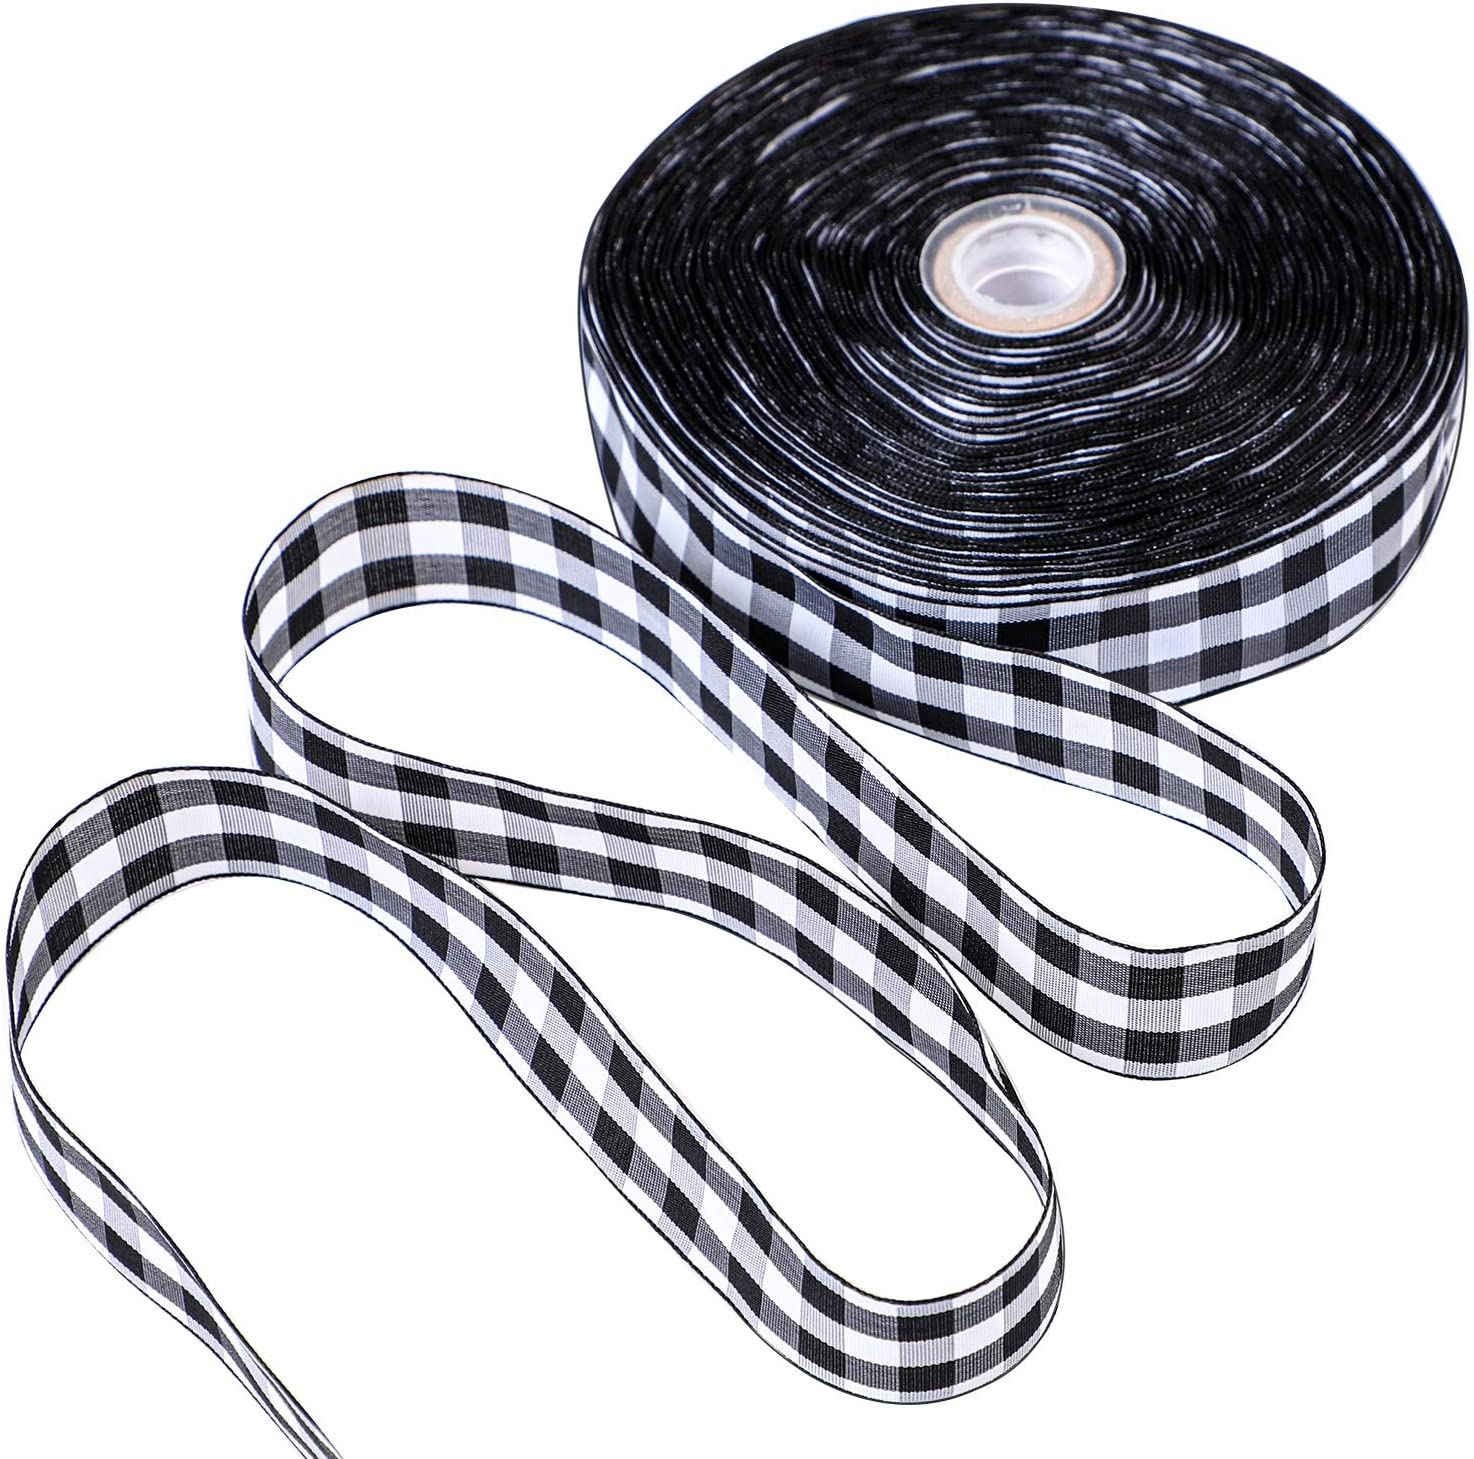 Color A, 1.57 Inches x 25 Yards Floral Bows Craft URATOT 25 Yards White and Black Plaid Ribbon Christmas Wrapping Ribbon Gingham Plaid Ribbon for DIY Crafts Decoration